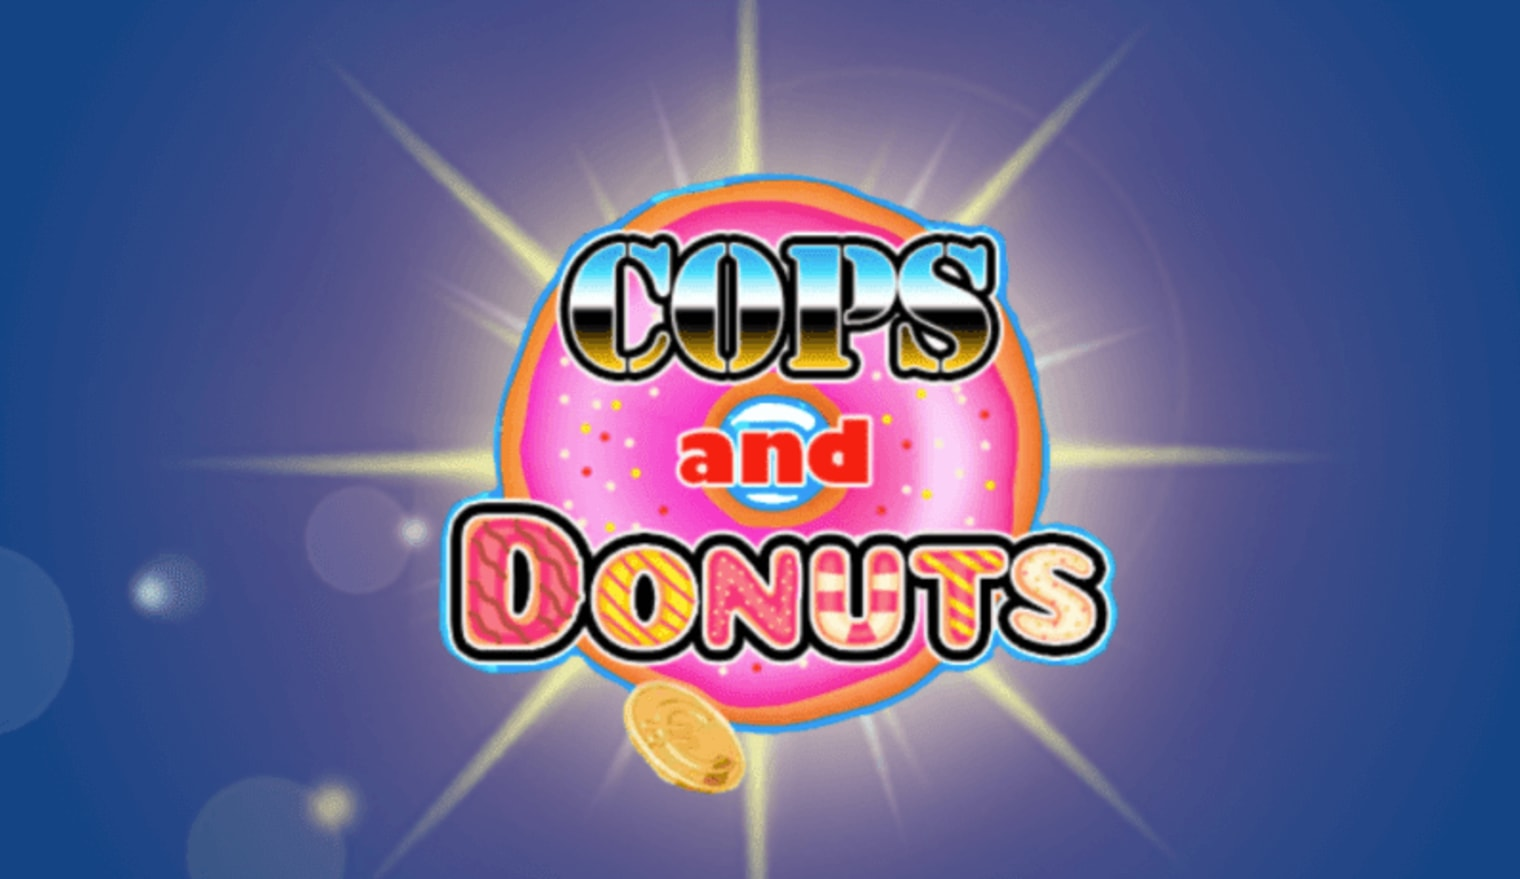 Cops and Donuts